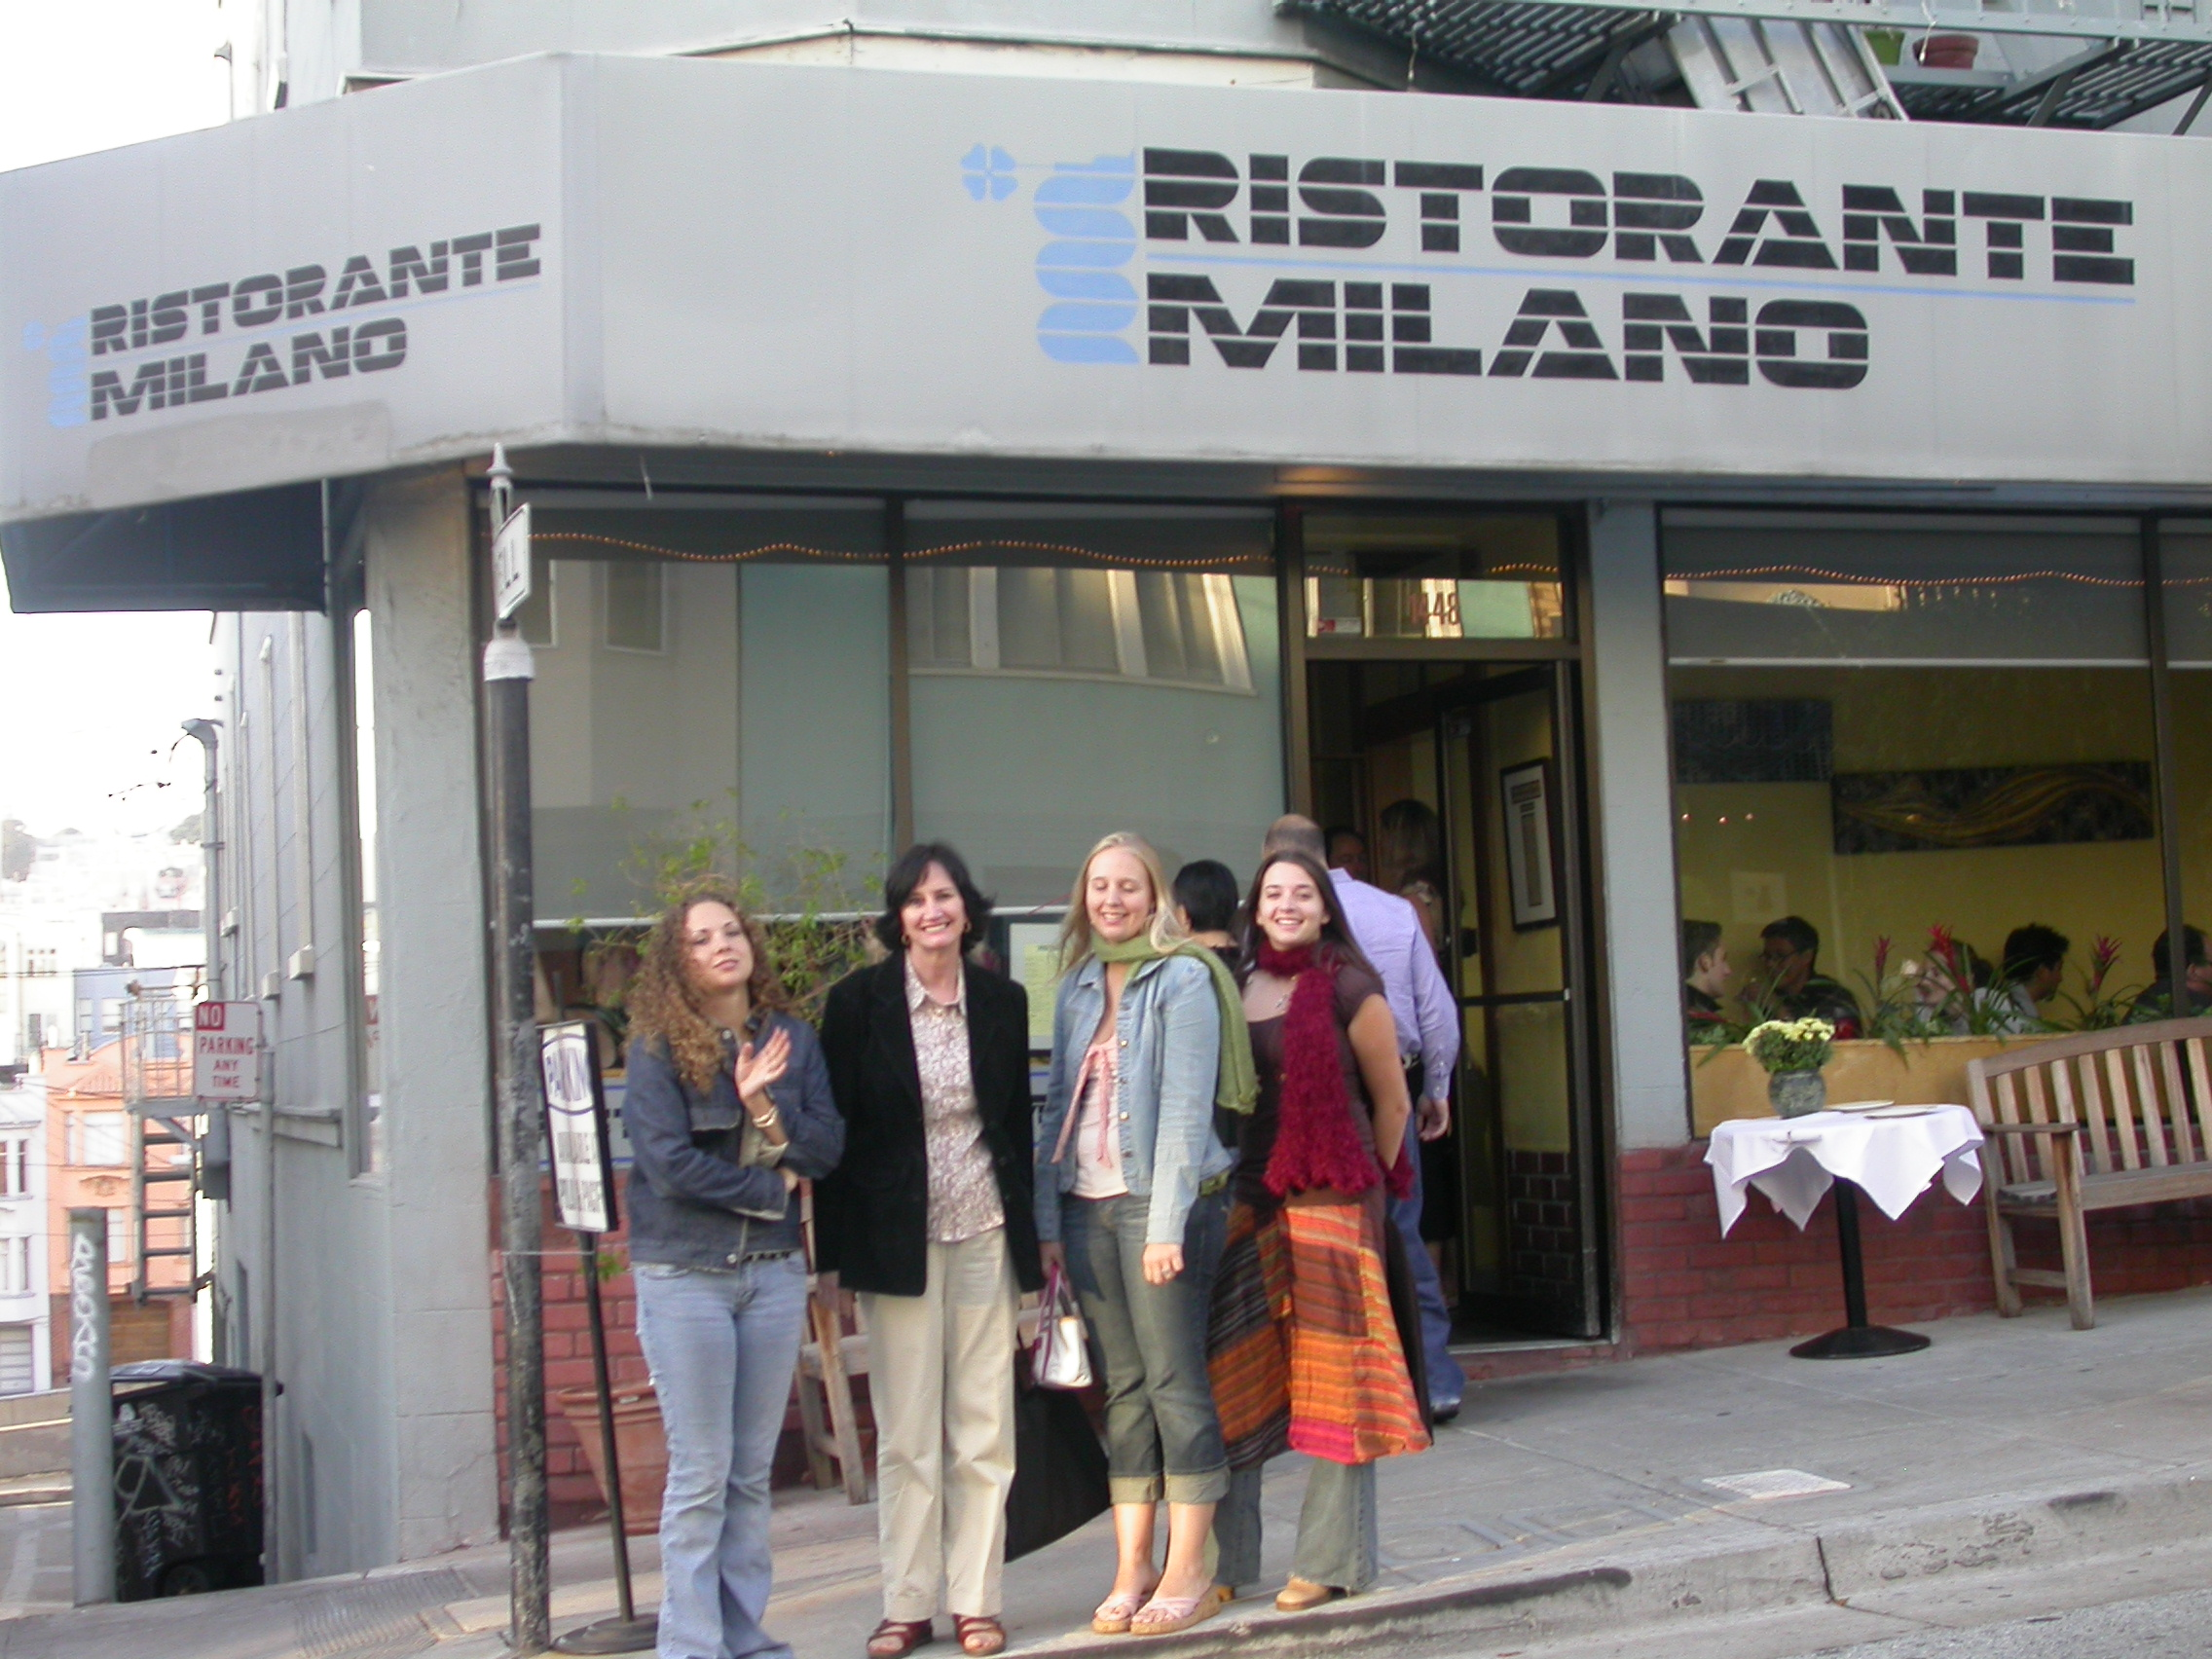 Southgate Coins staff visits at Ristorante Milano to get their Italian dining fix